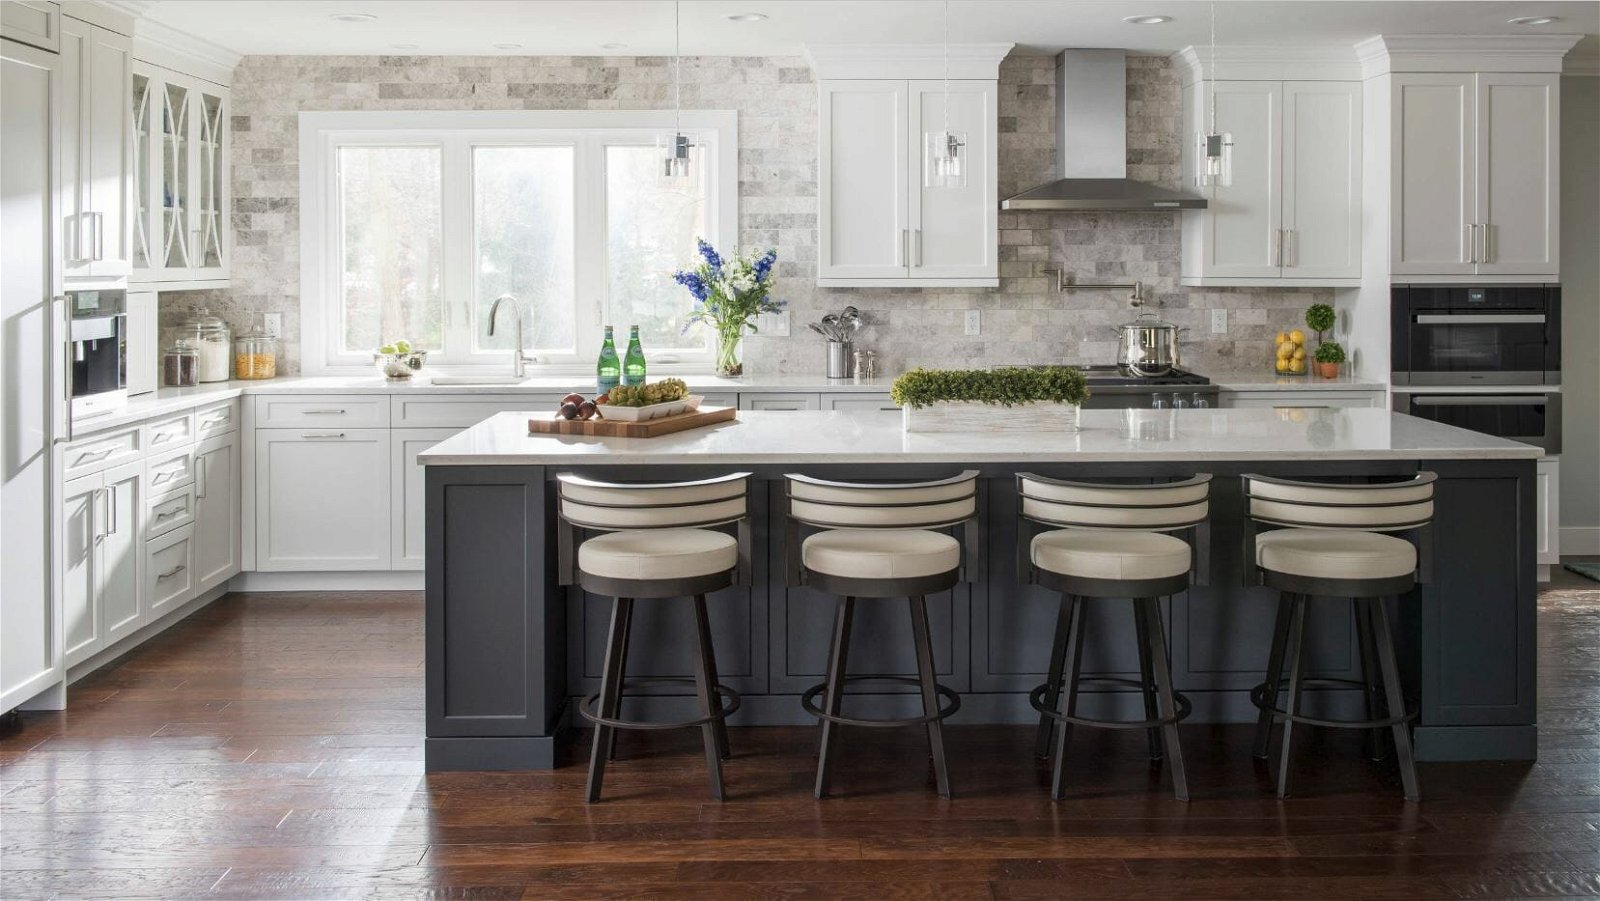 What To Look For When Hiring A Kitchen Interior Designer